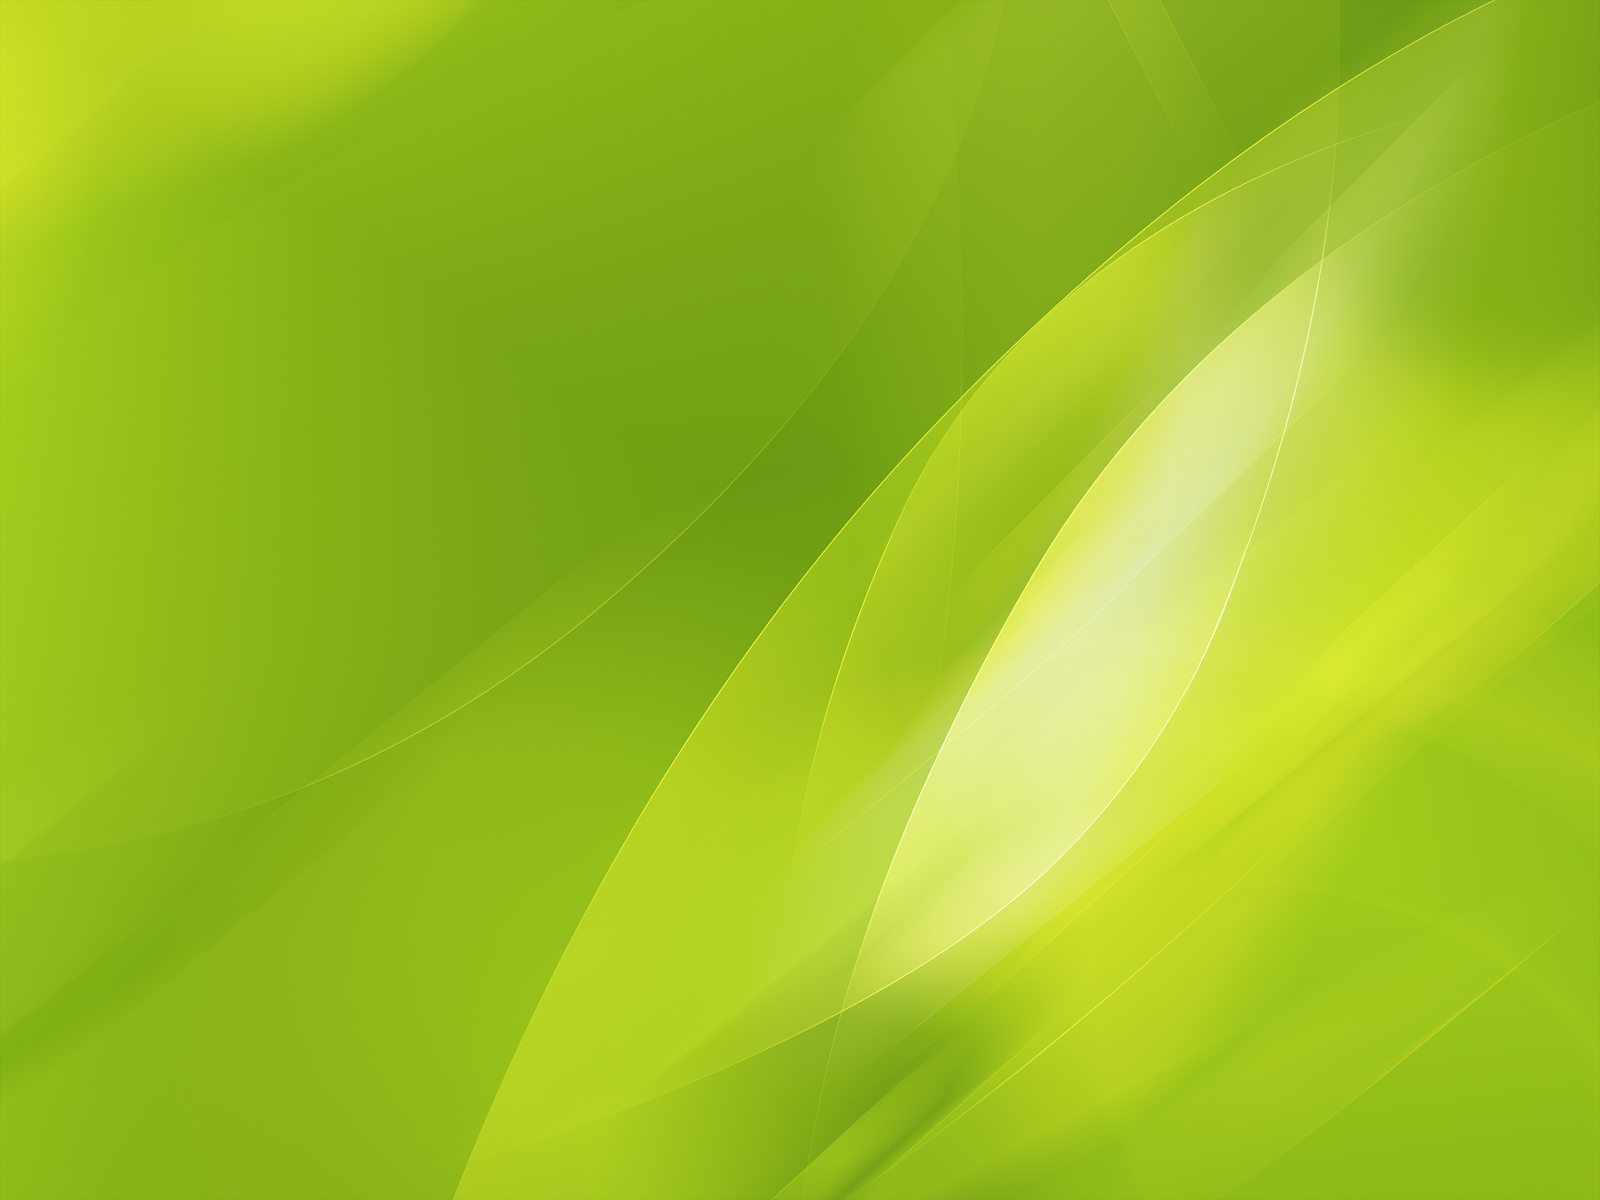 Aquadrome Lime Windows 7 Wallpaper 26874823 Fanpop